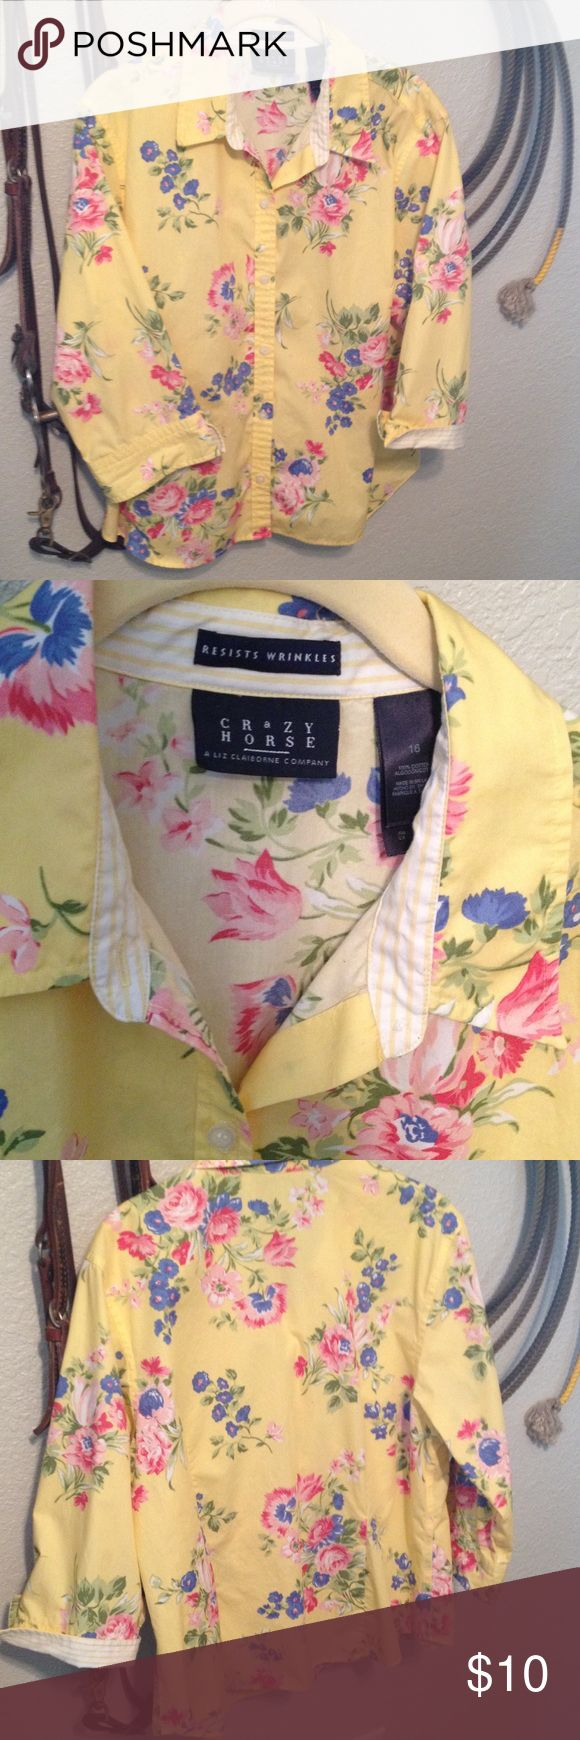 Crazy Horse Ladies Shirt 100% cotton, floral, 3/4 sleeves, size 16 Crazy Horse Tops Button Down Shirts